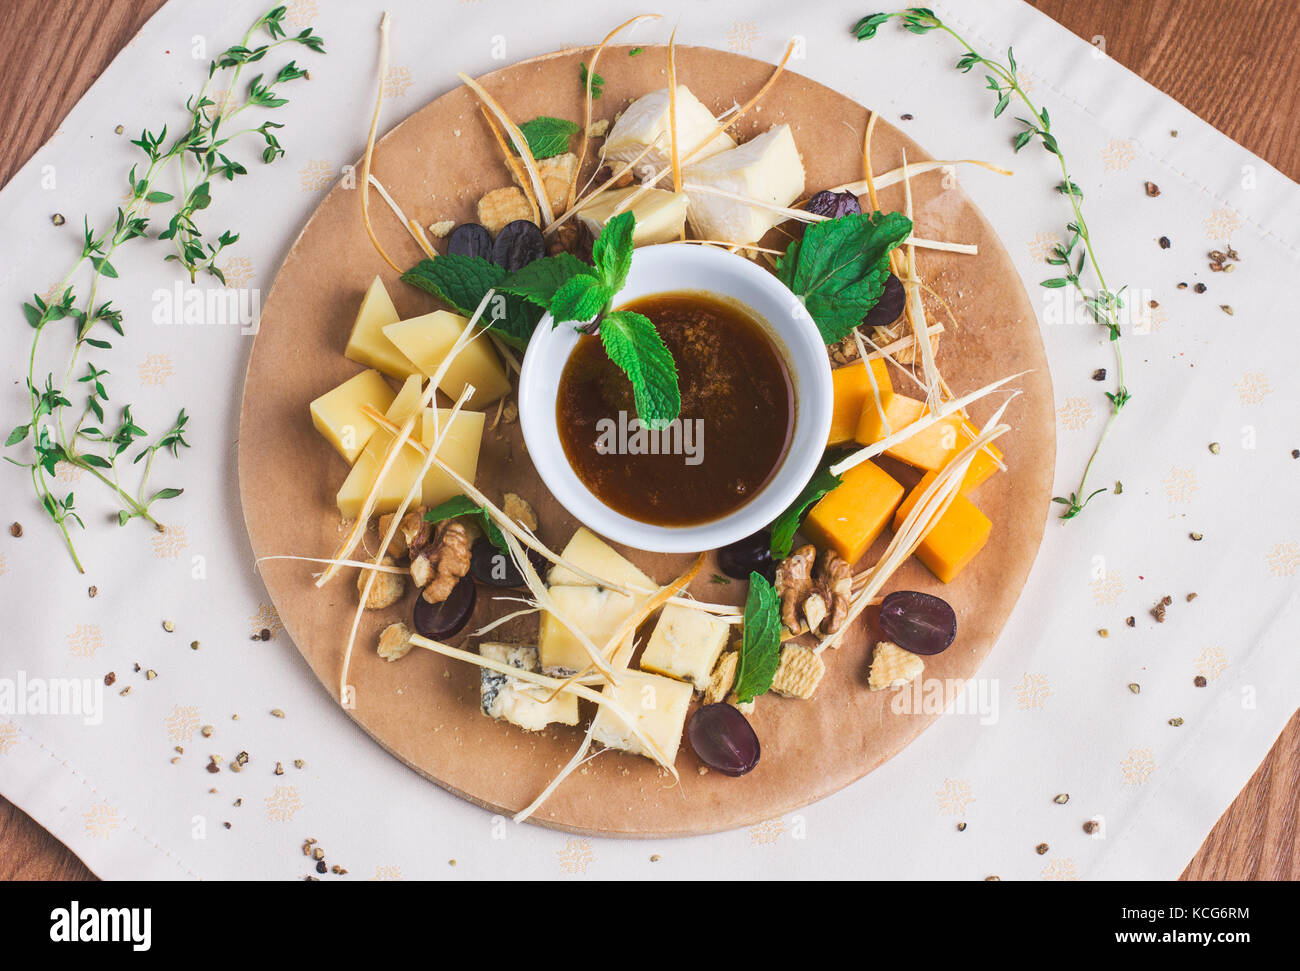 Different types of cheese with honey, nuts and fruits on round wooden Board - Stock Image